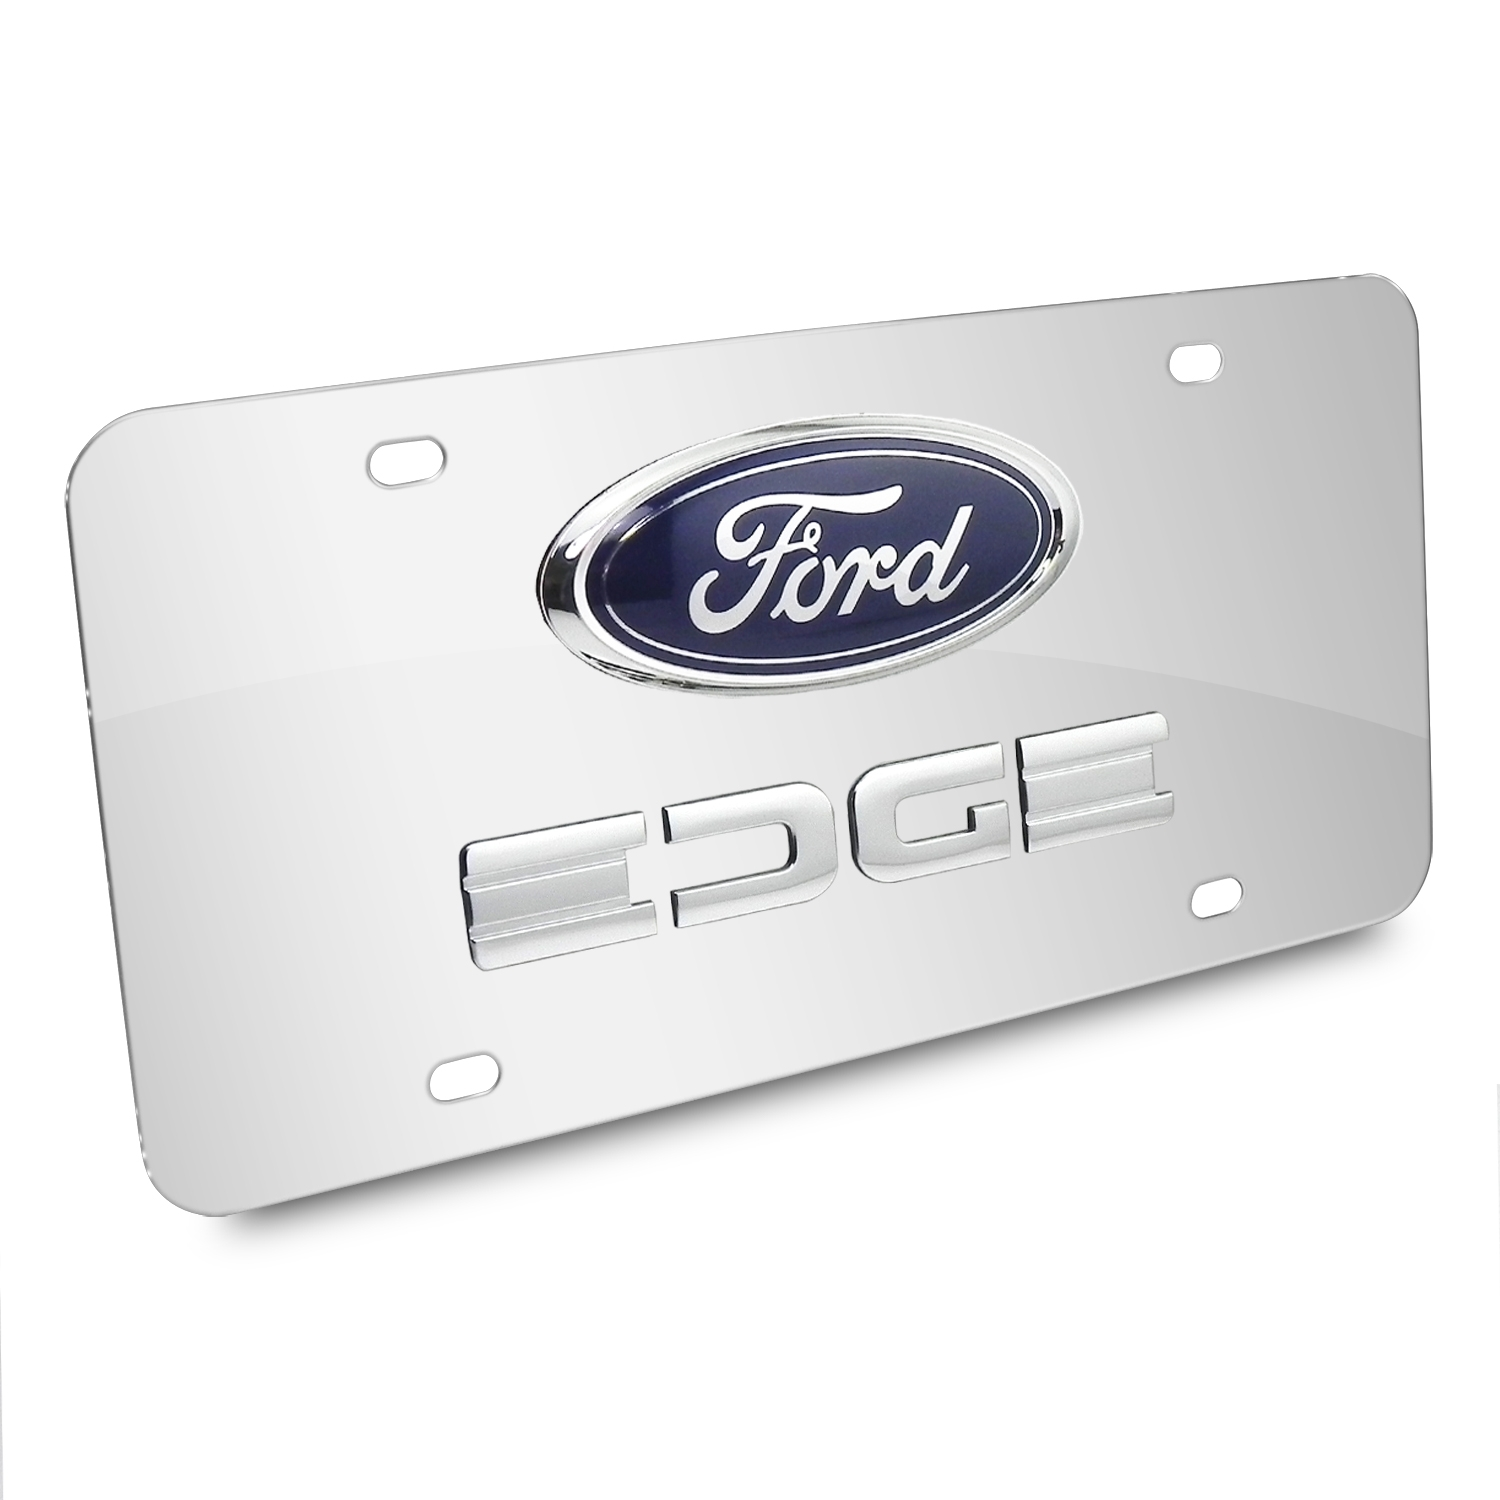 Ford Edge Double D Logo Chrome Stainless Steel License Plate